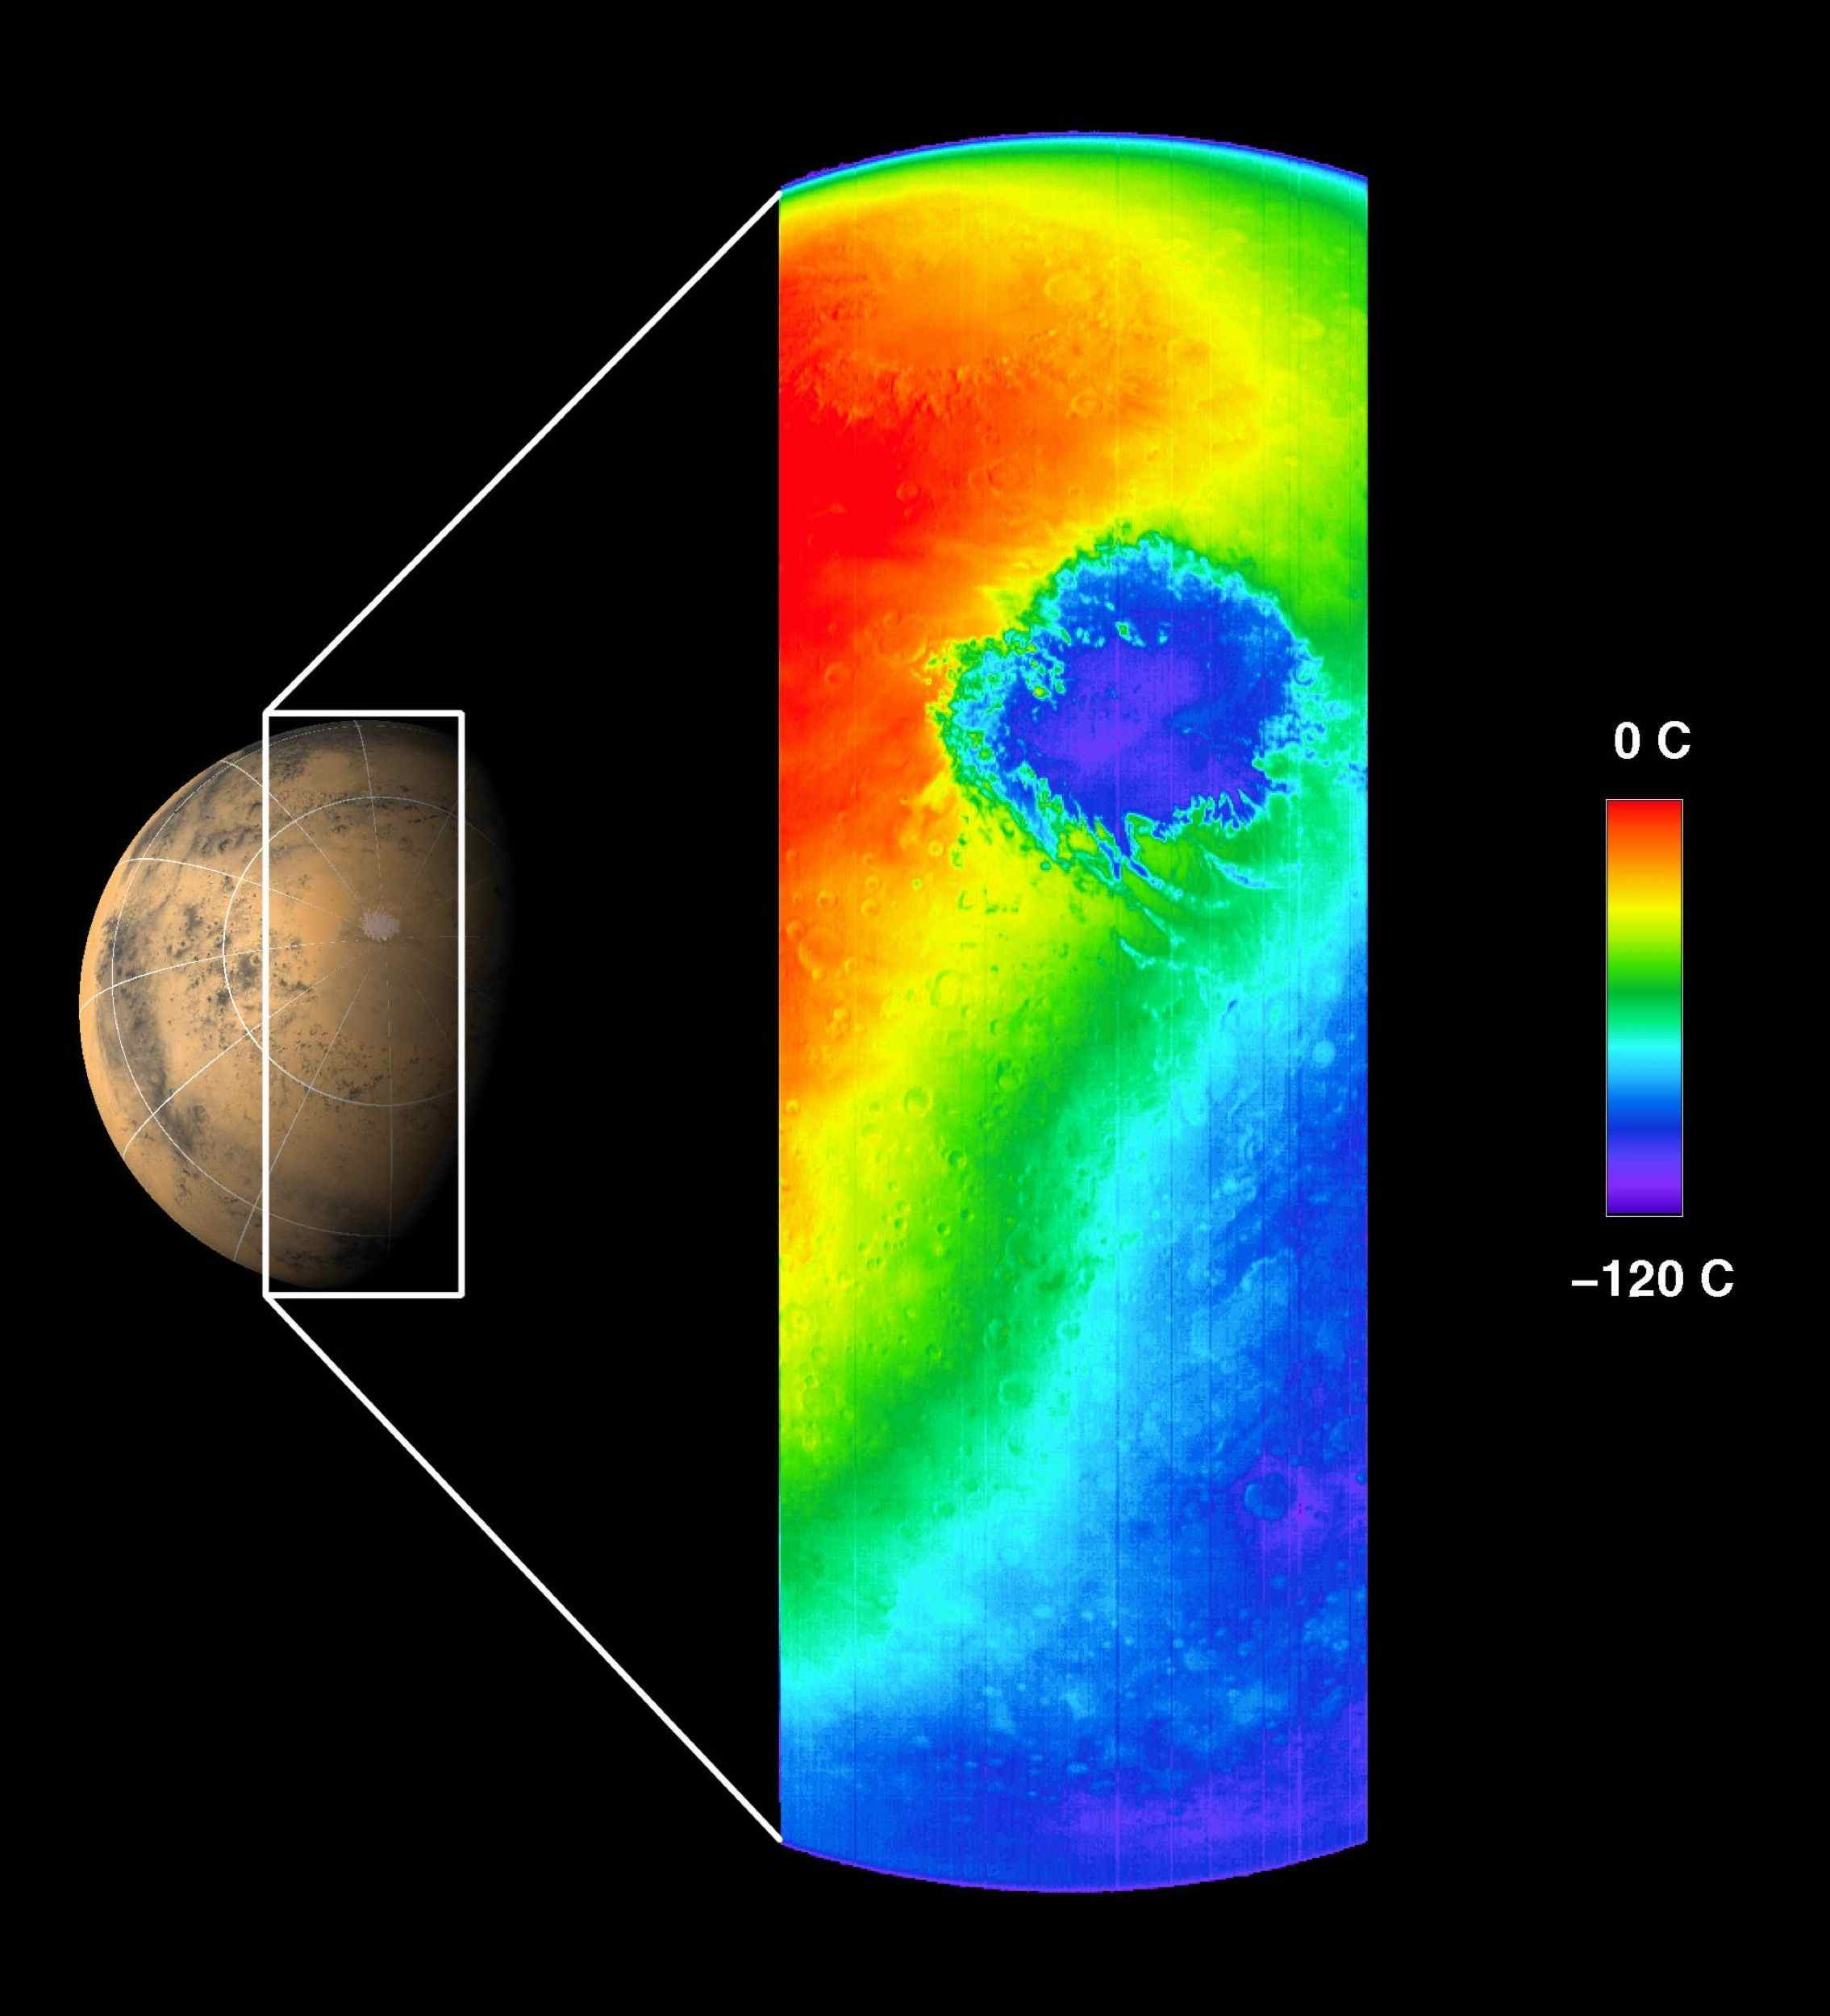 This thermal infrared image was acquired by NASA's Mars Odyssey spacecraft on October 30, 2001, as the spacecraft orbited Mars on its ninth revolution around the planet.